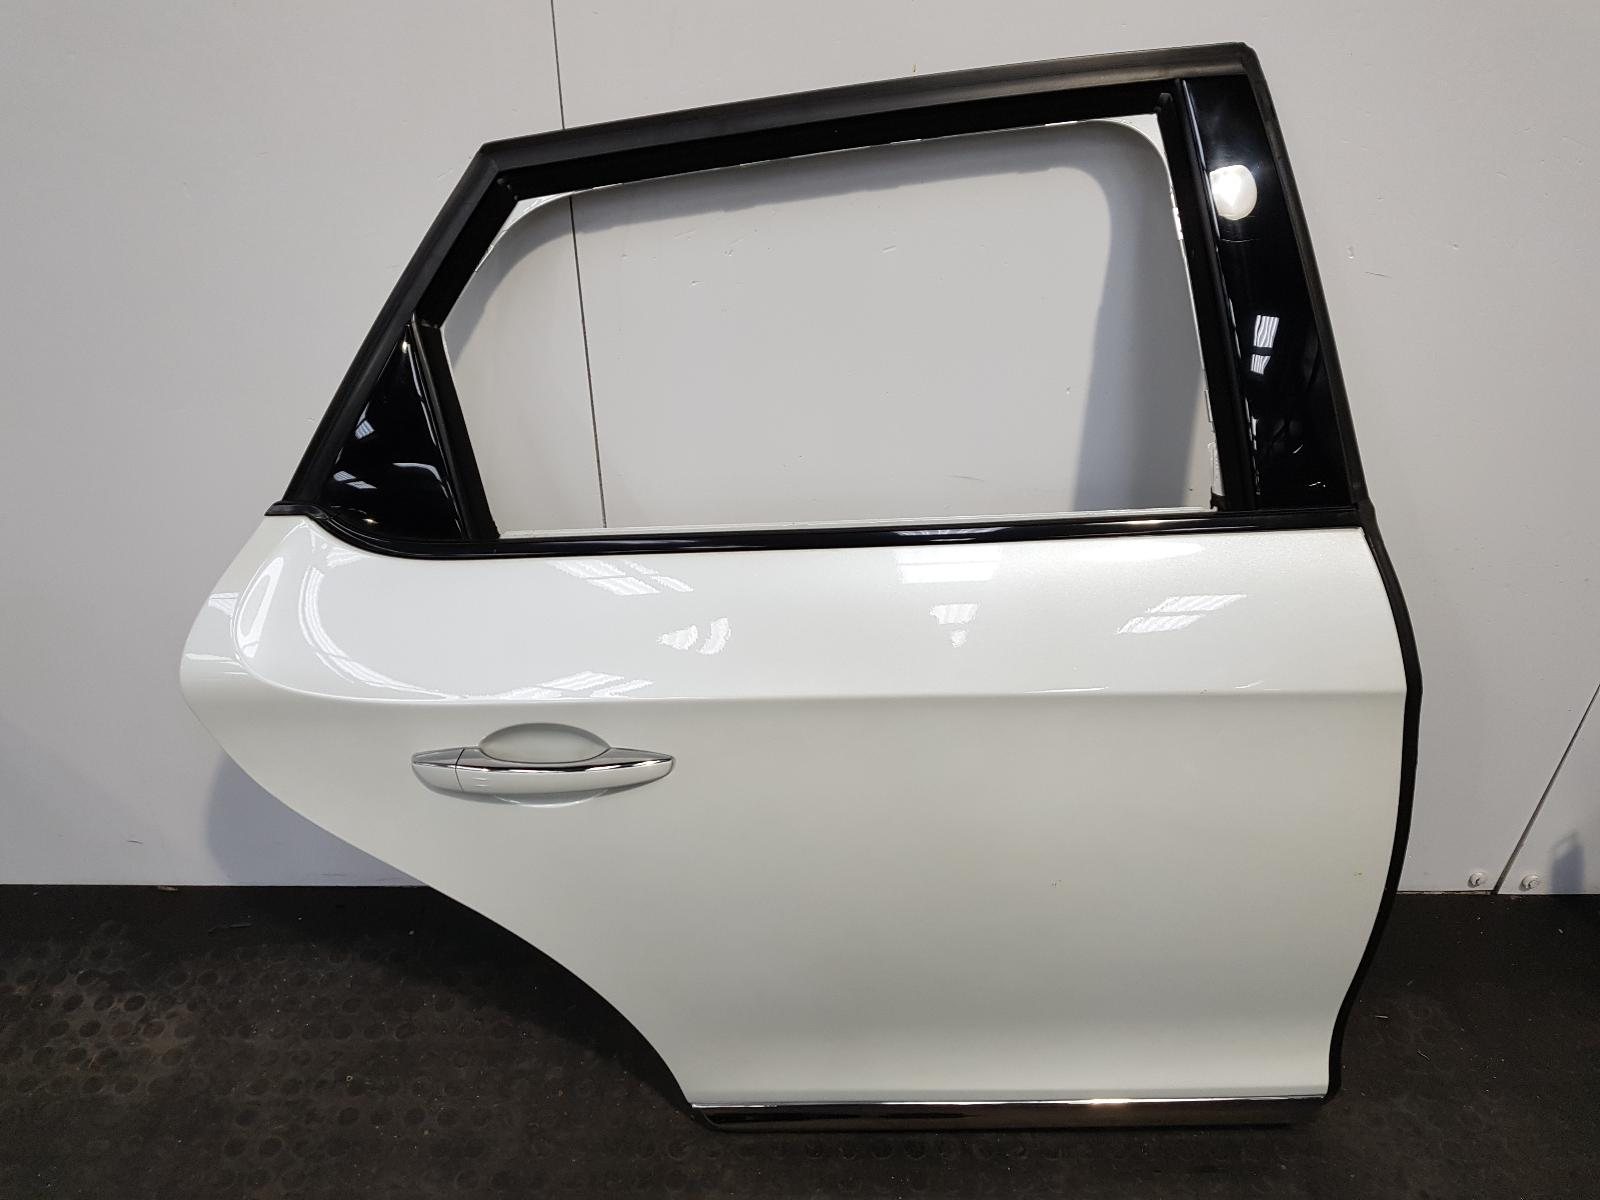 View Auto part R Rear Door Citroen Ds5 2013